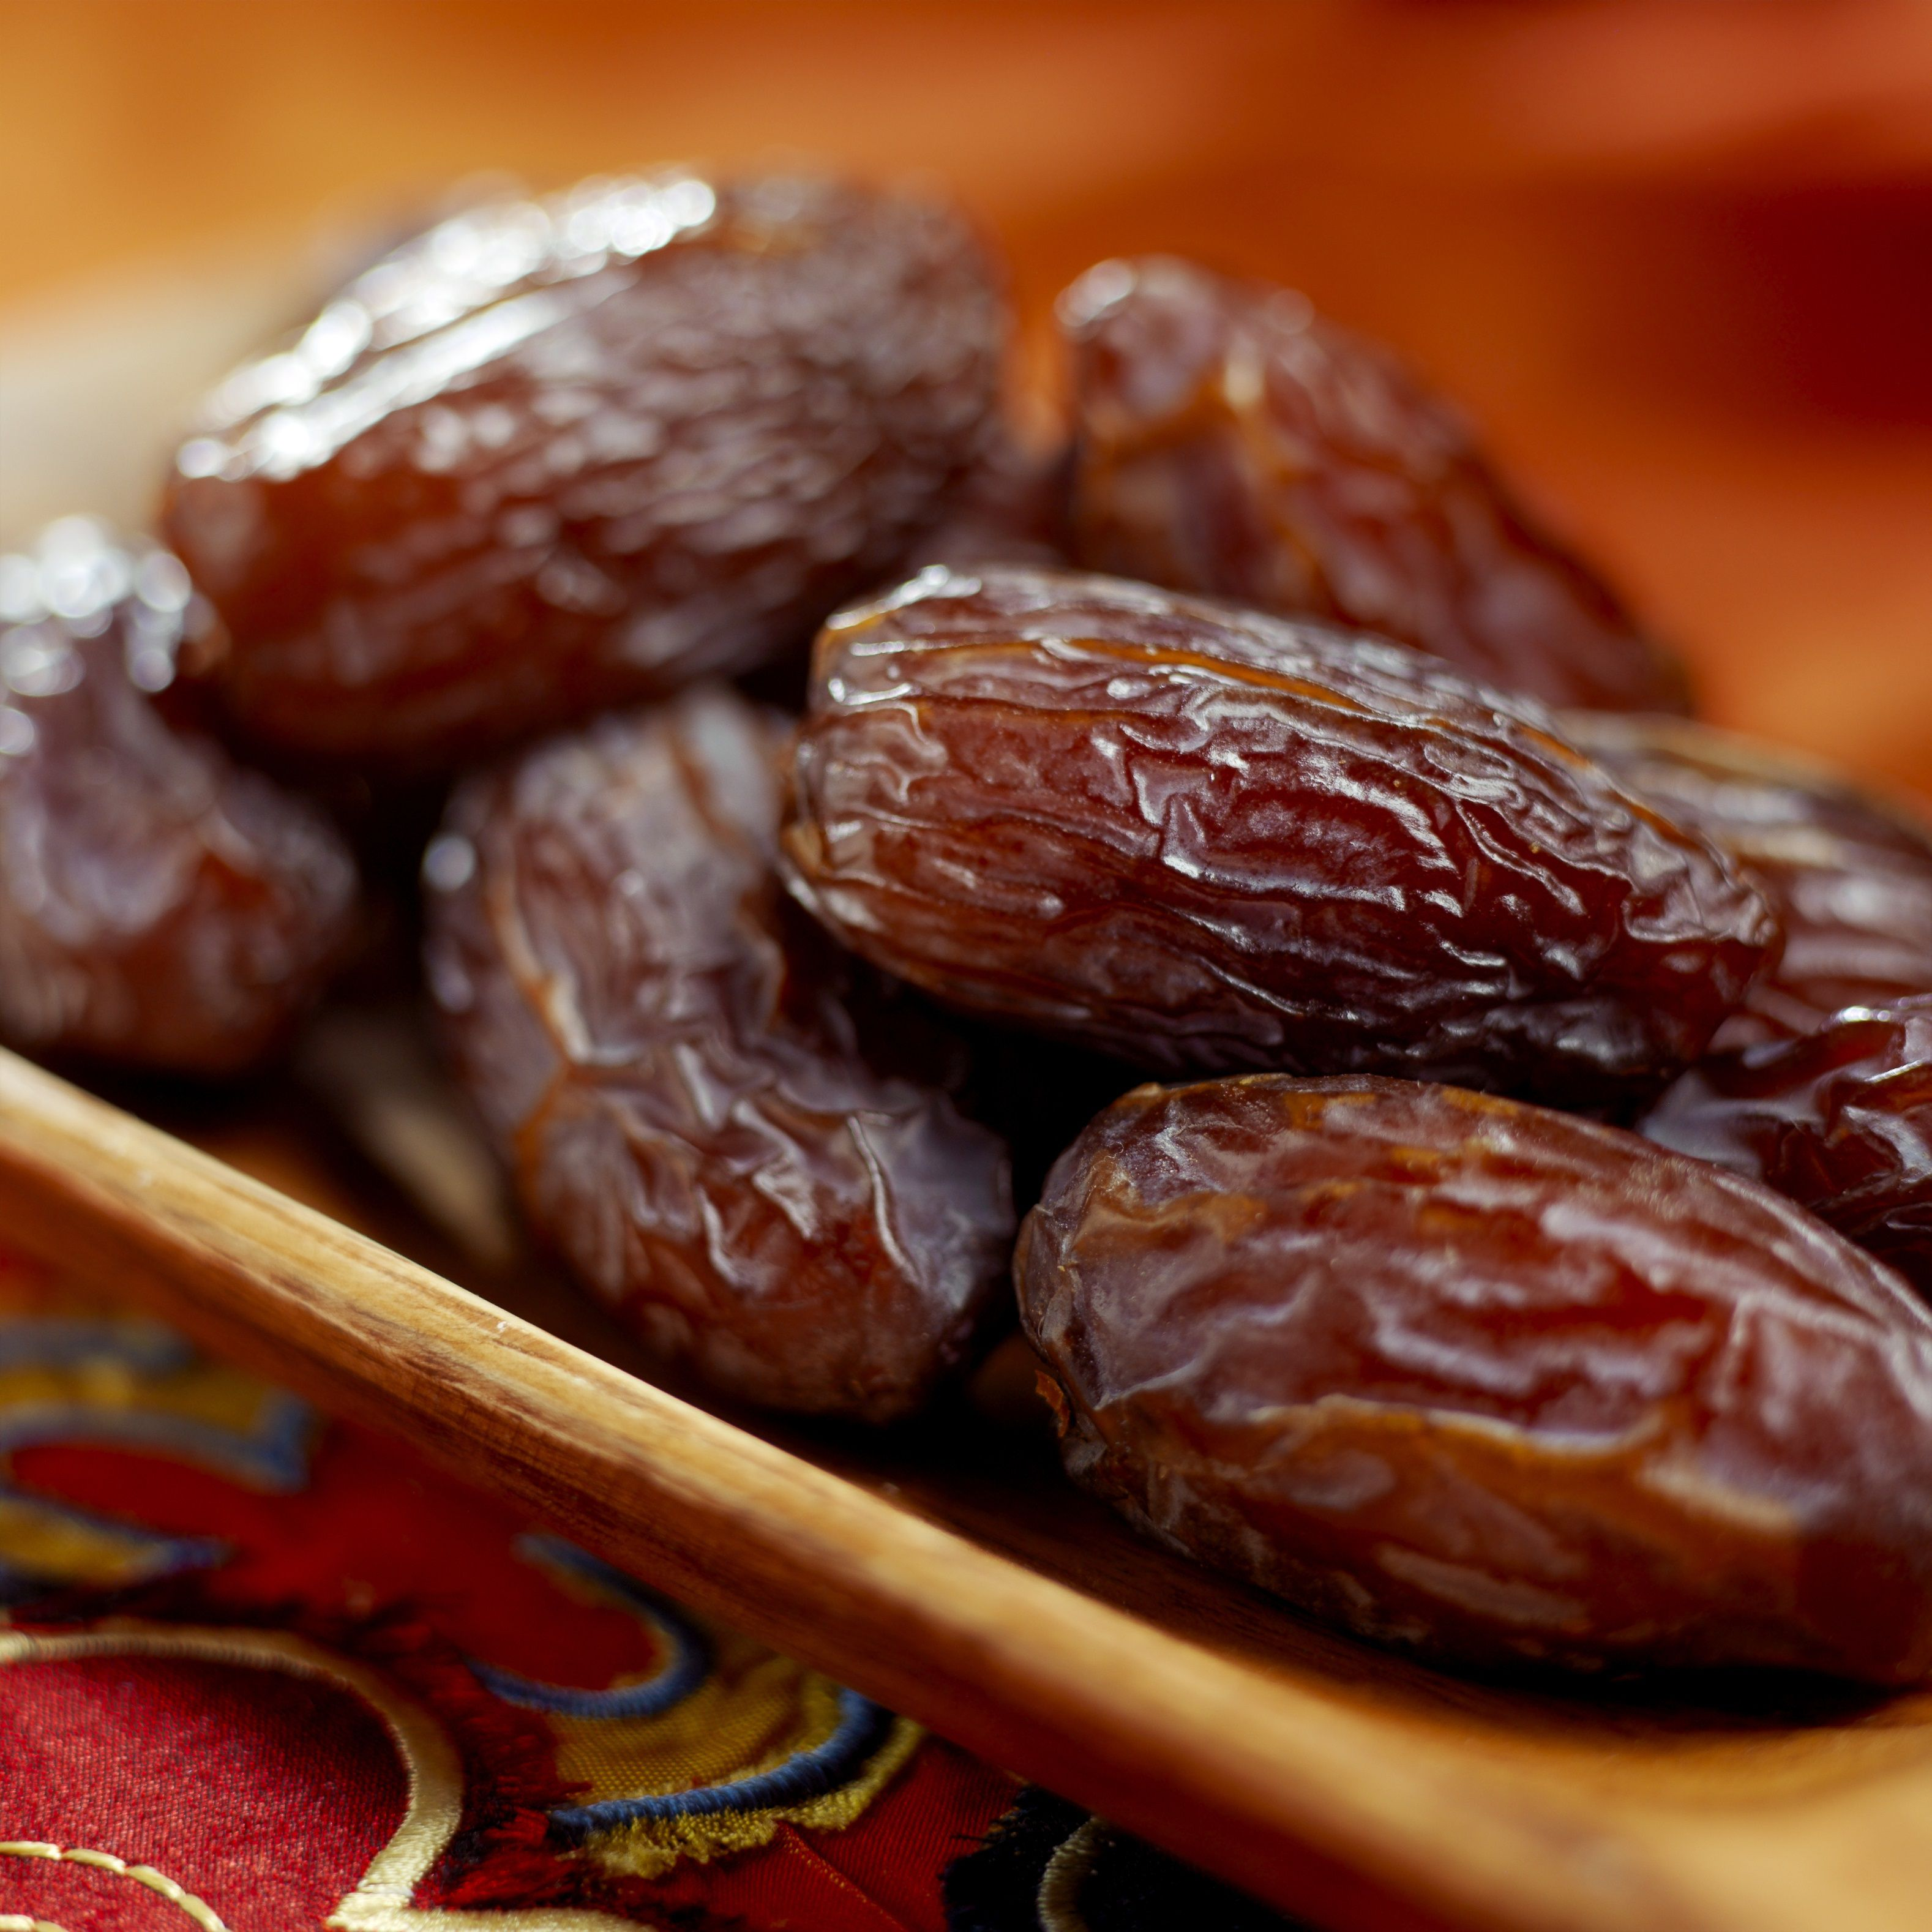 Why Muslims Break Their Fast With Dates